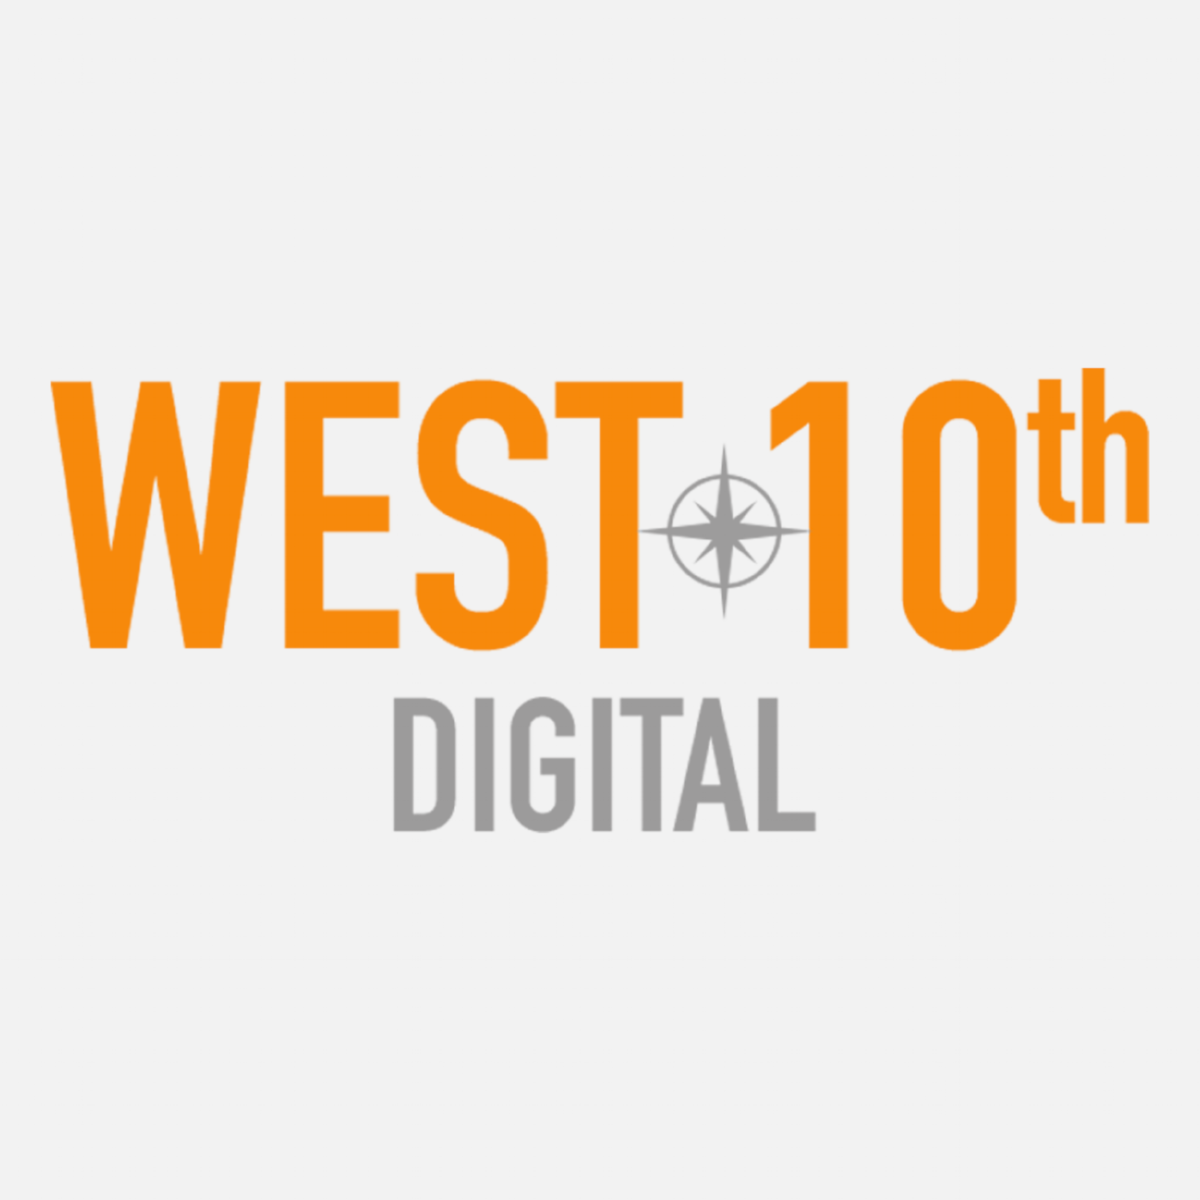 West 10th Digital